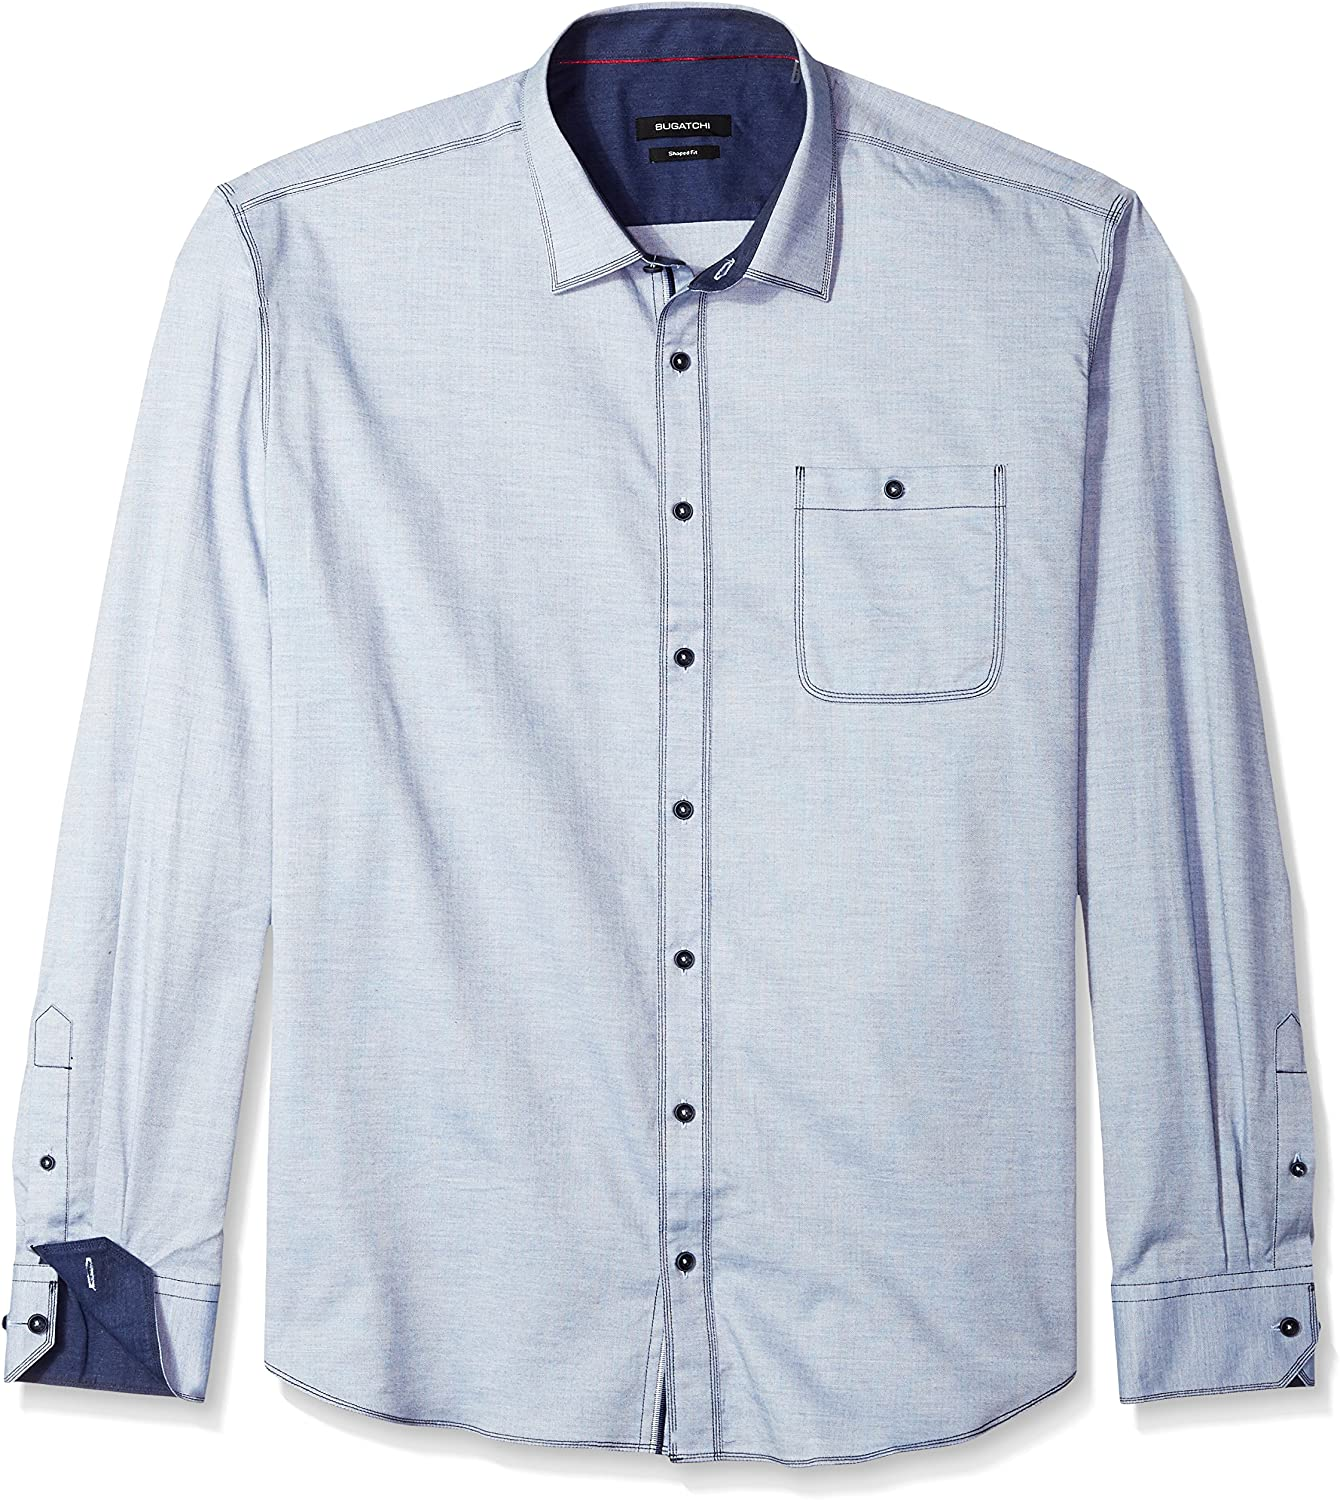 Bugatchi Mens Long Sleeve Shaped Fit Chambray Cotton Button Down Shirt